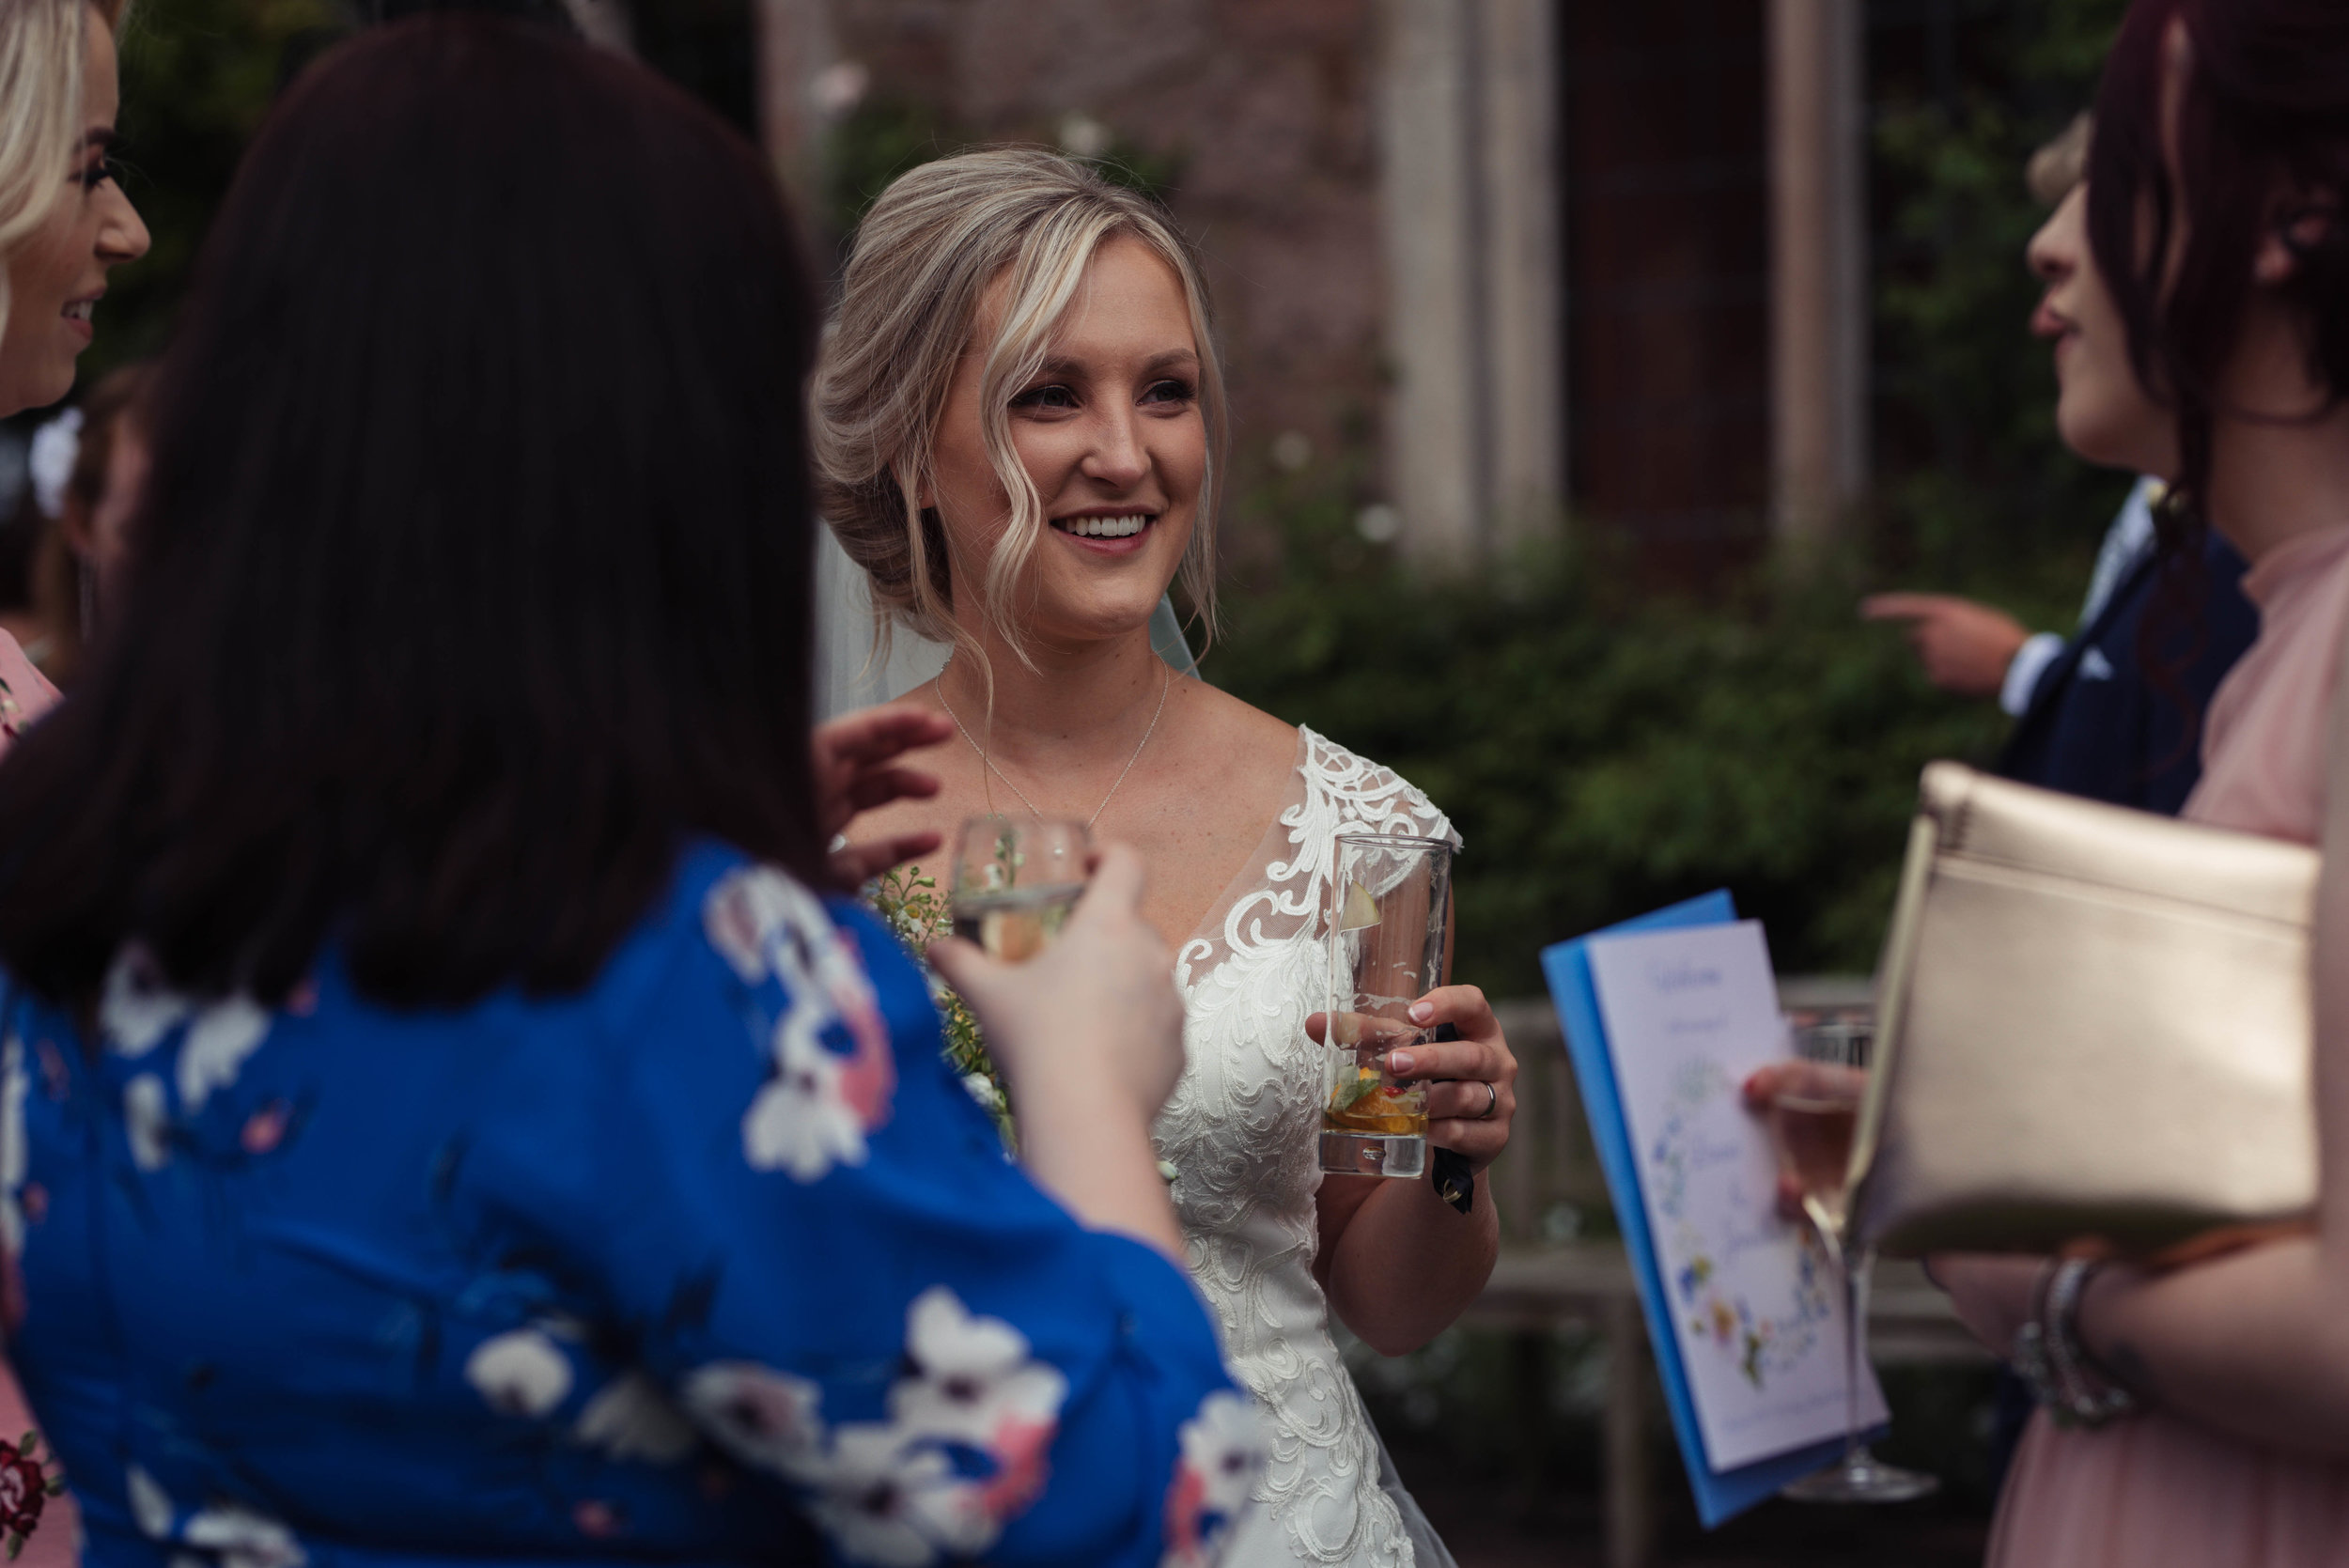 The bride chats to wedding guests during the drinks reception at Askham Hall